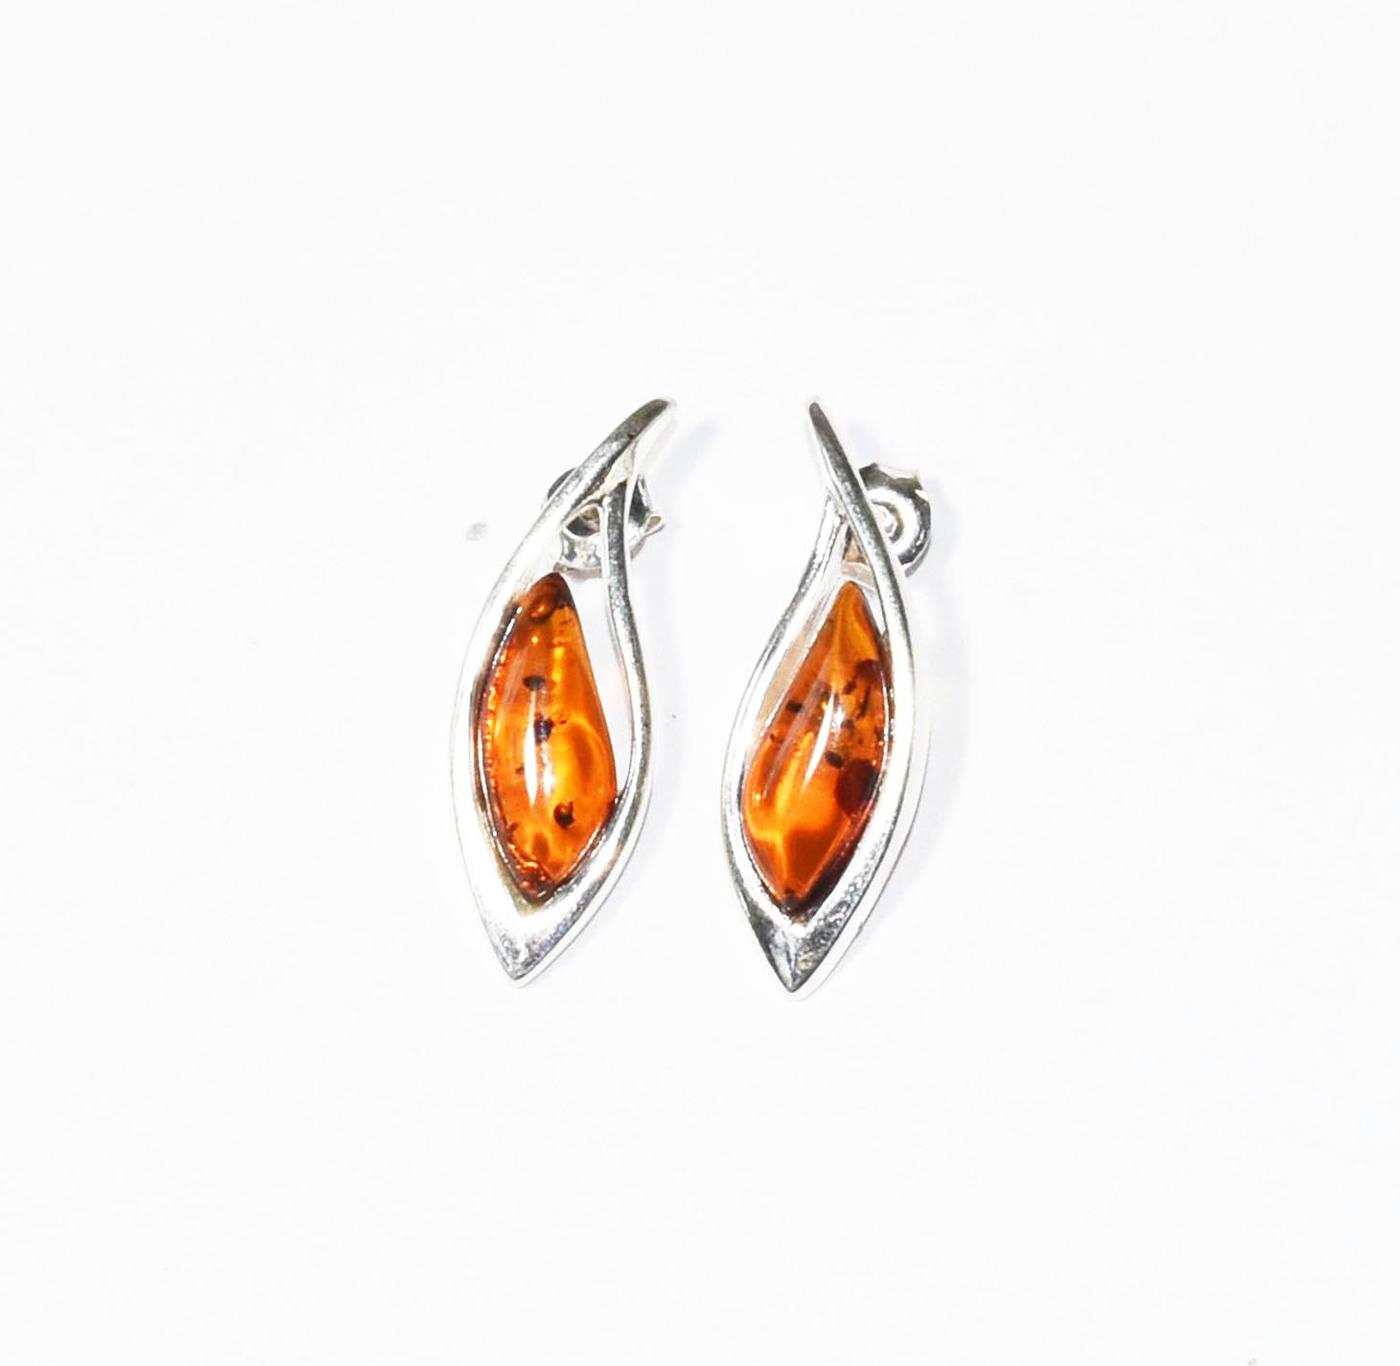 Baltic amber and silver stud earrings in Art Deco style.  (E-815s)